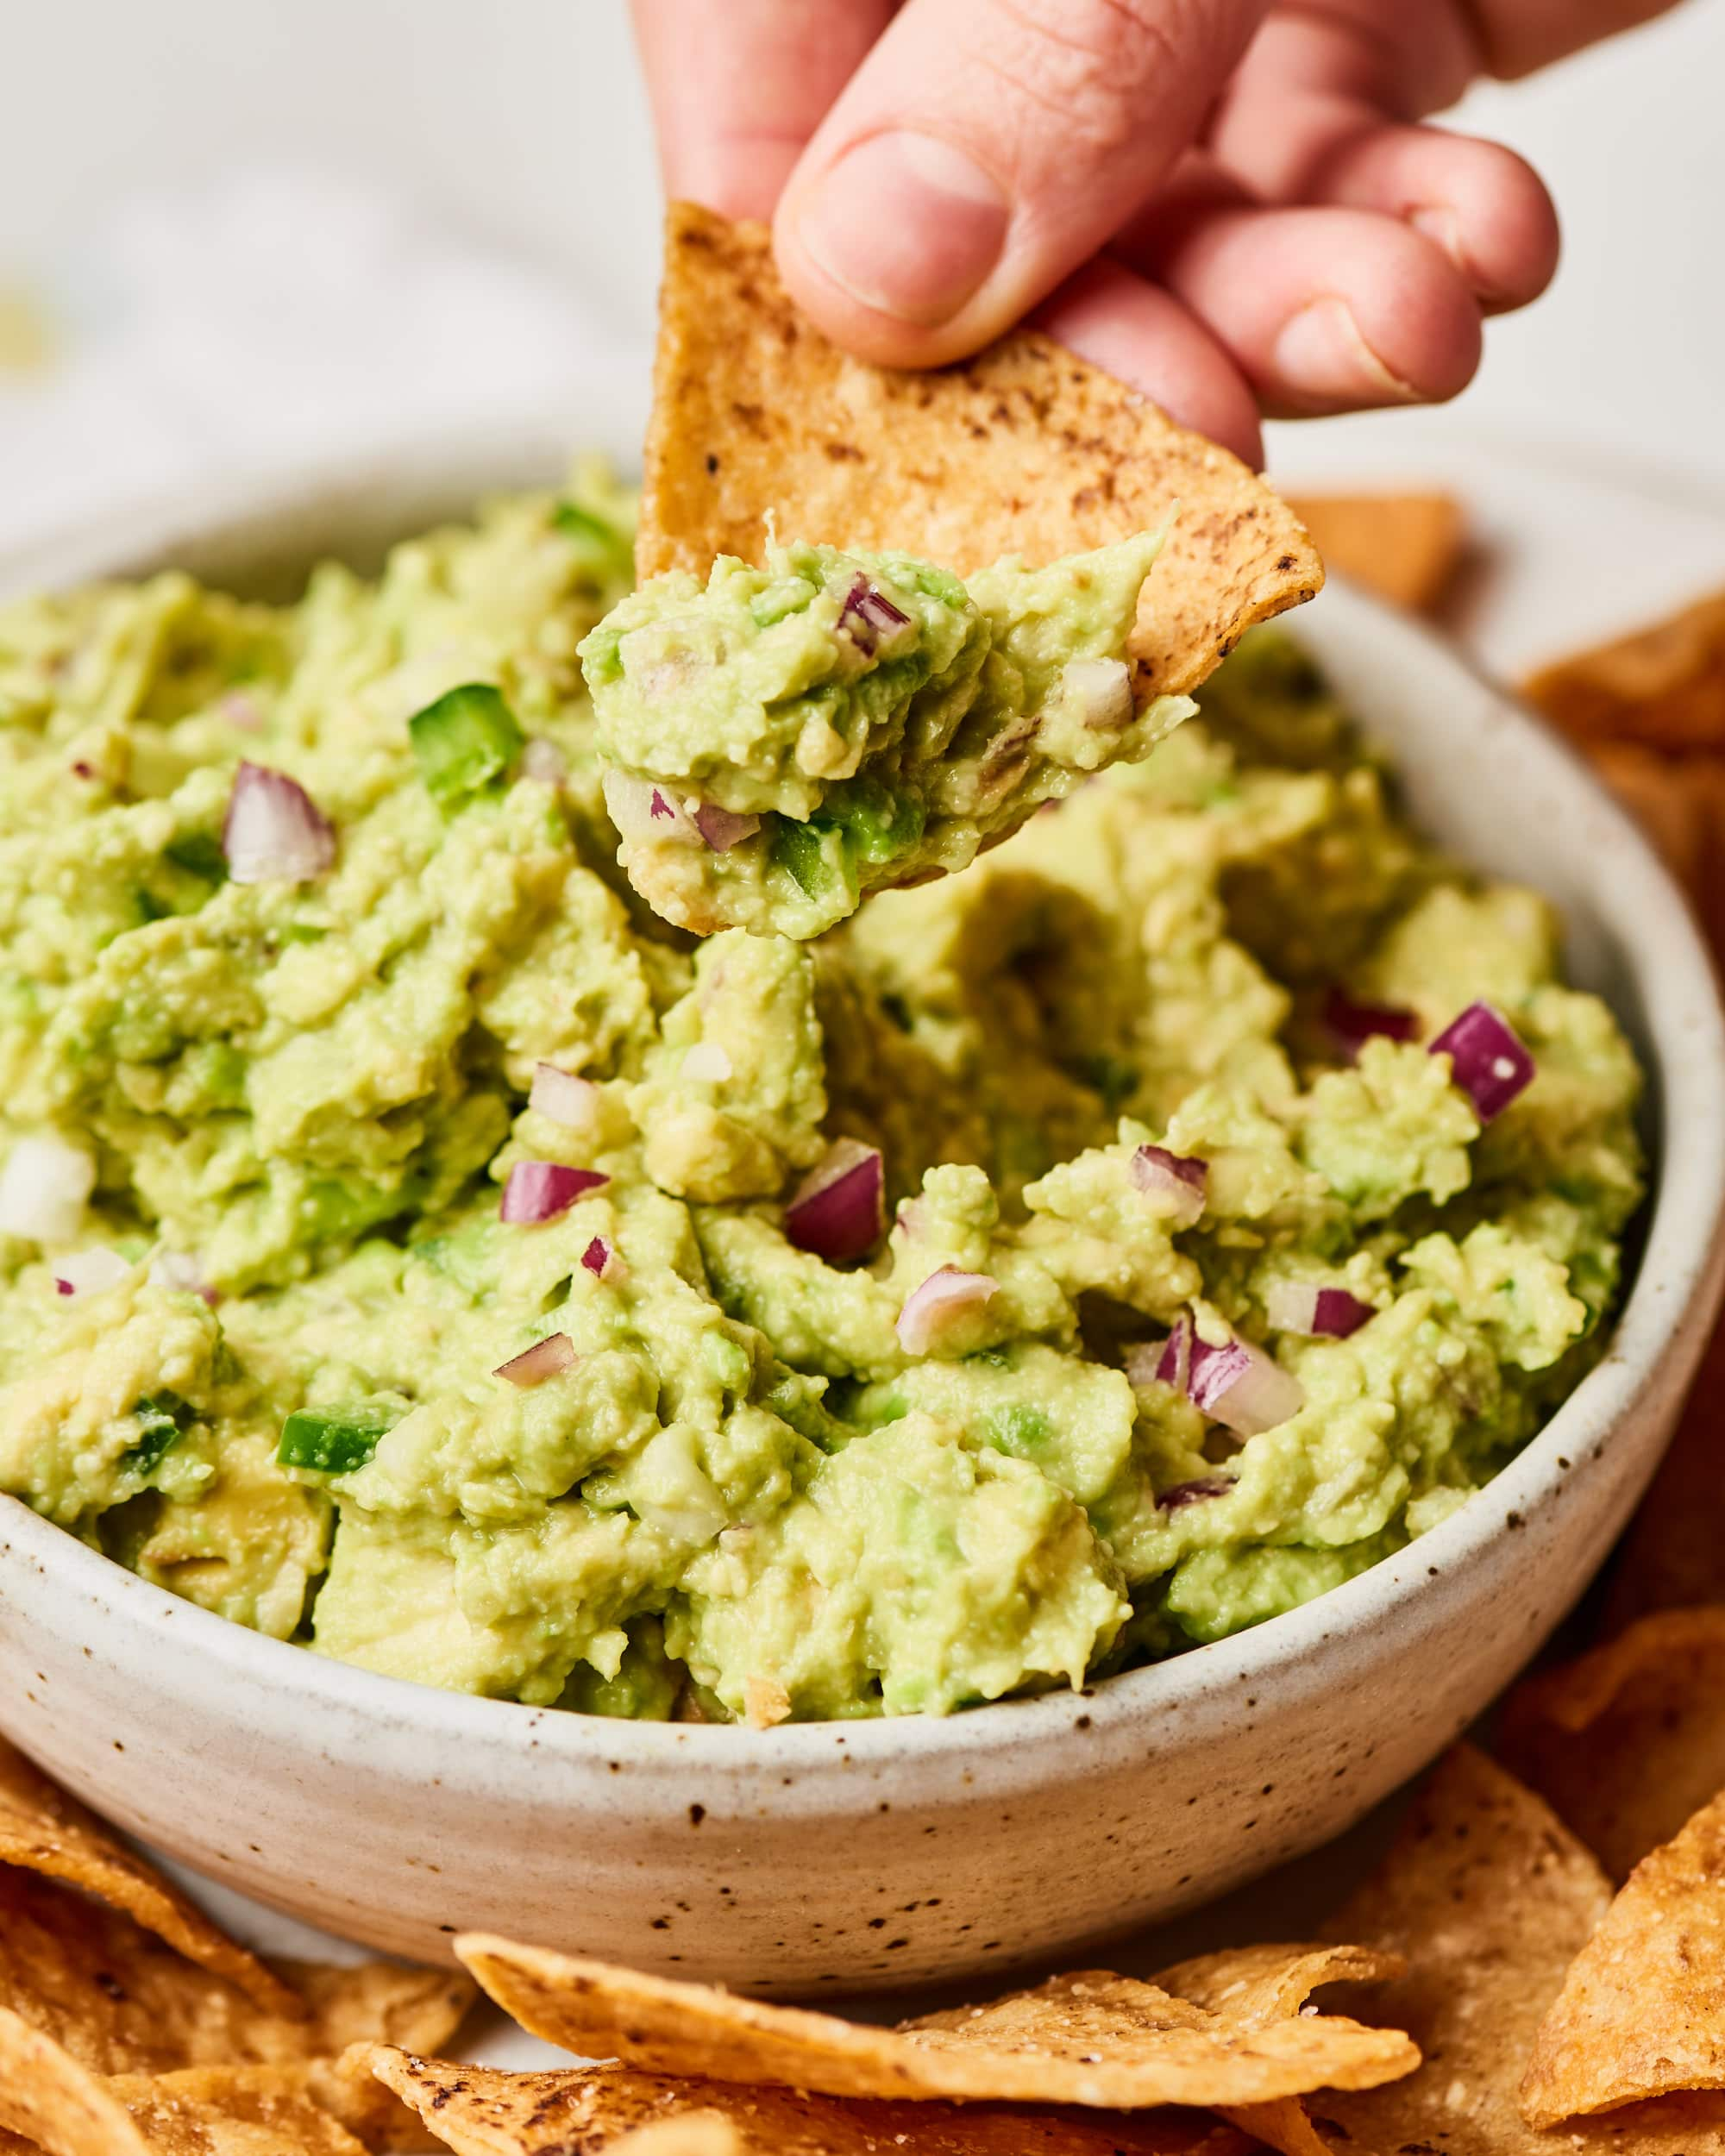 How To Make the Best, Easiest Homemade Guacamole